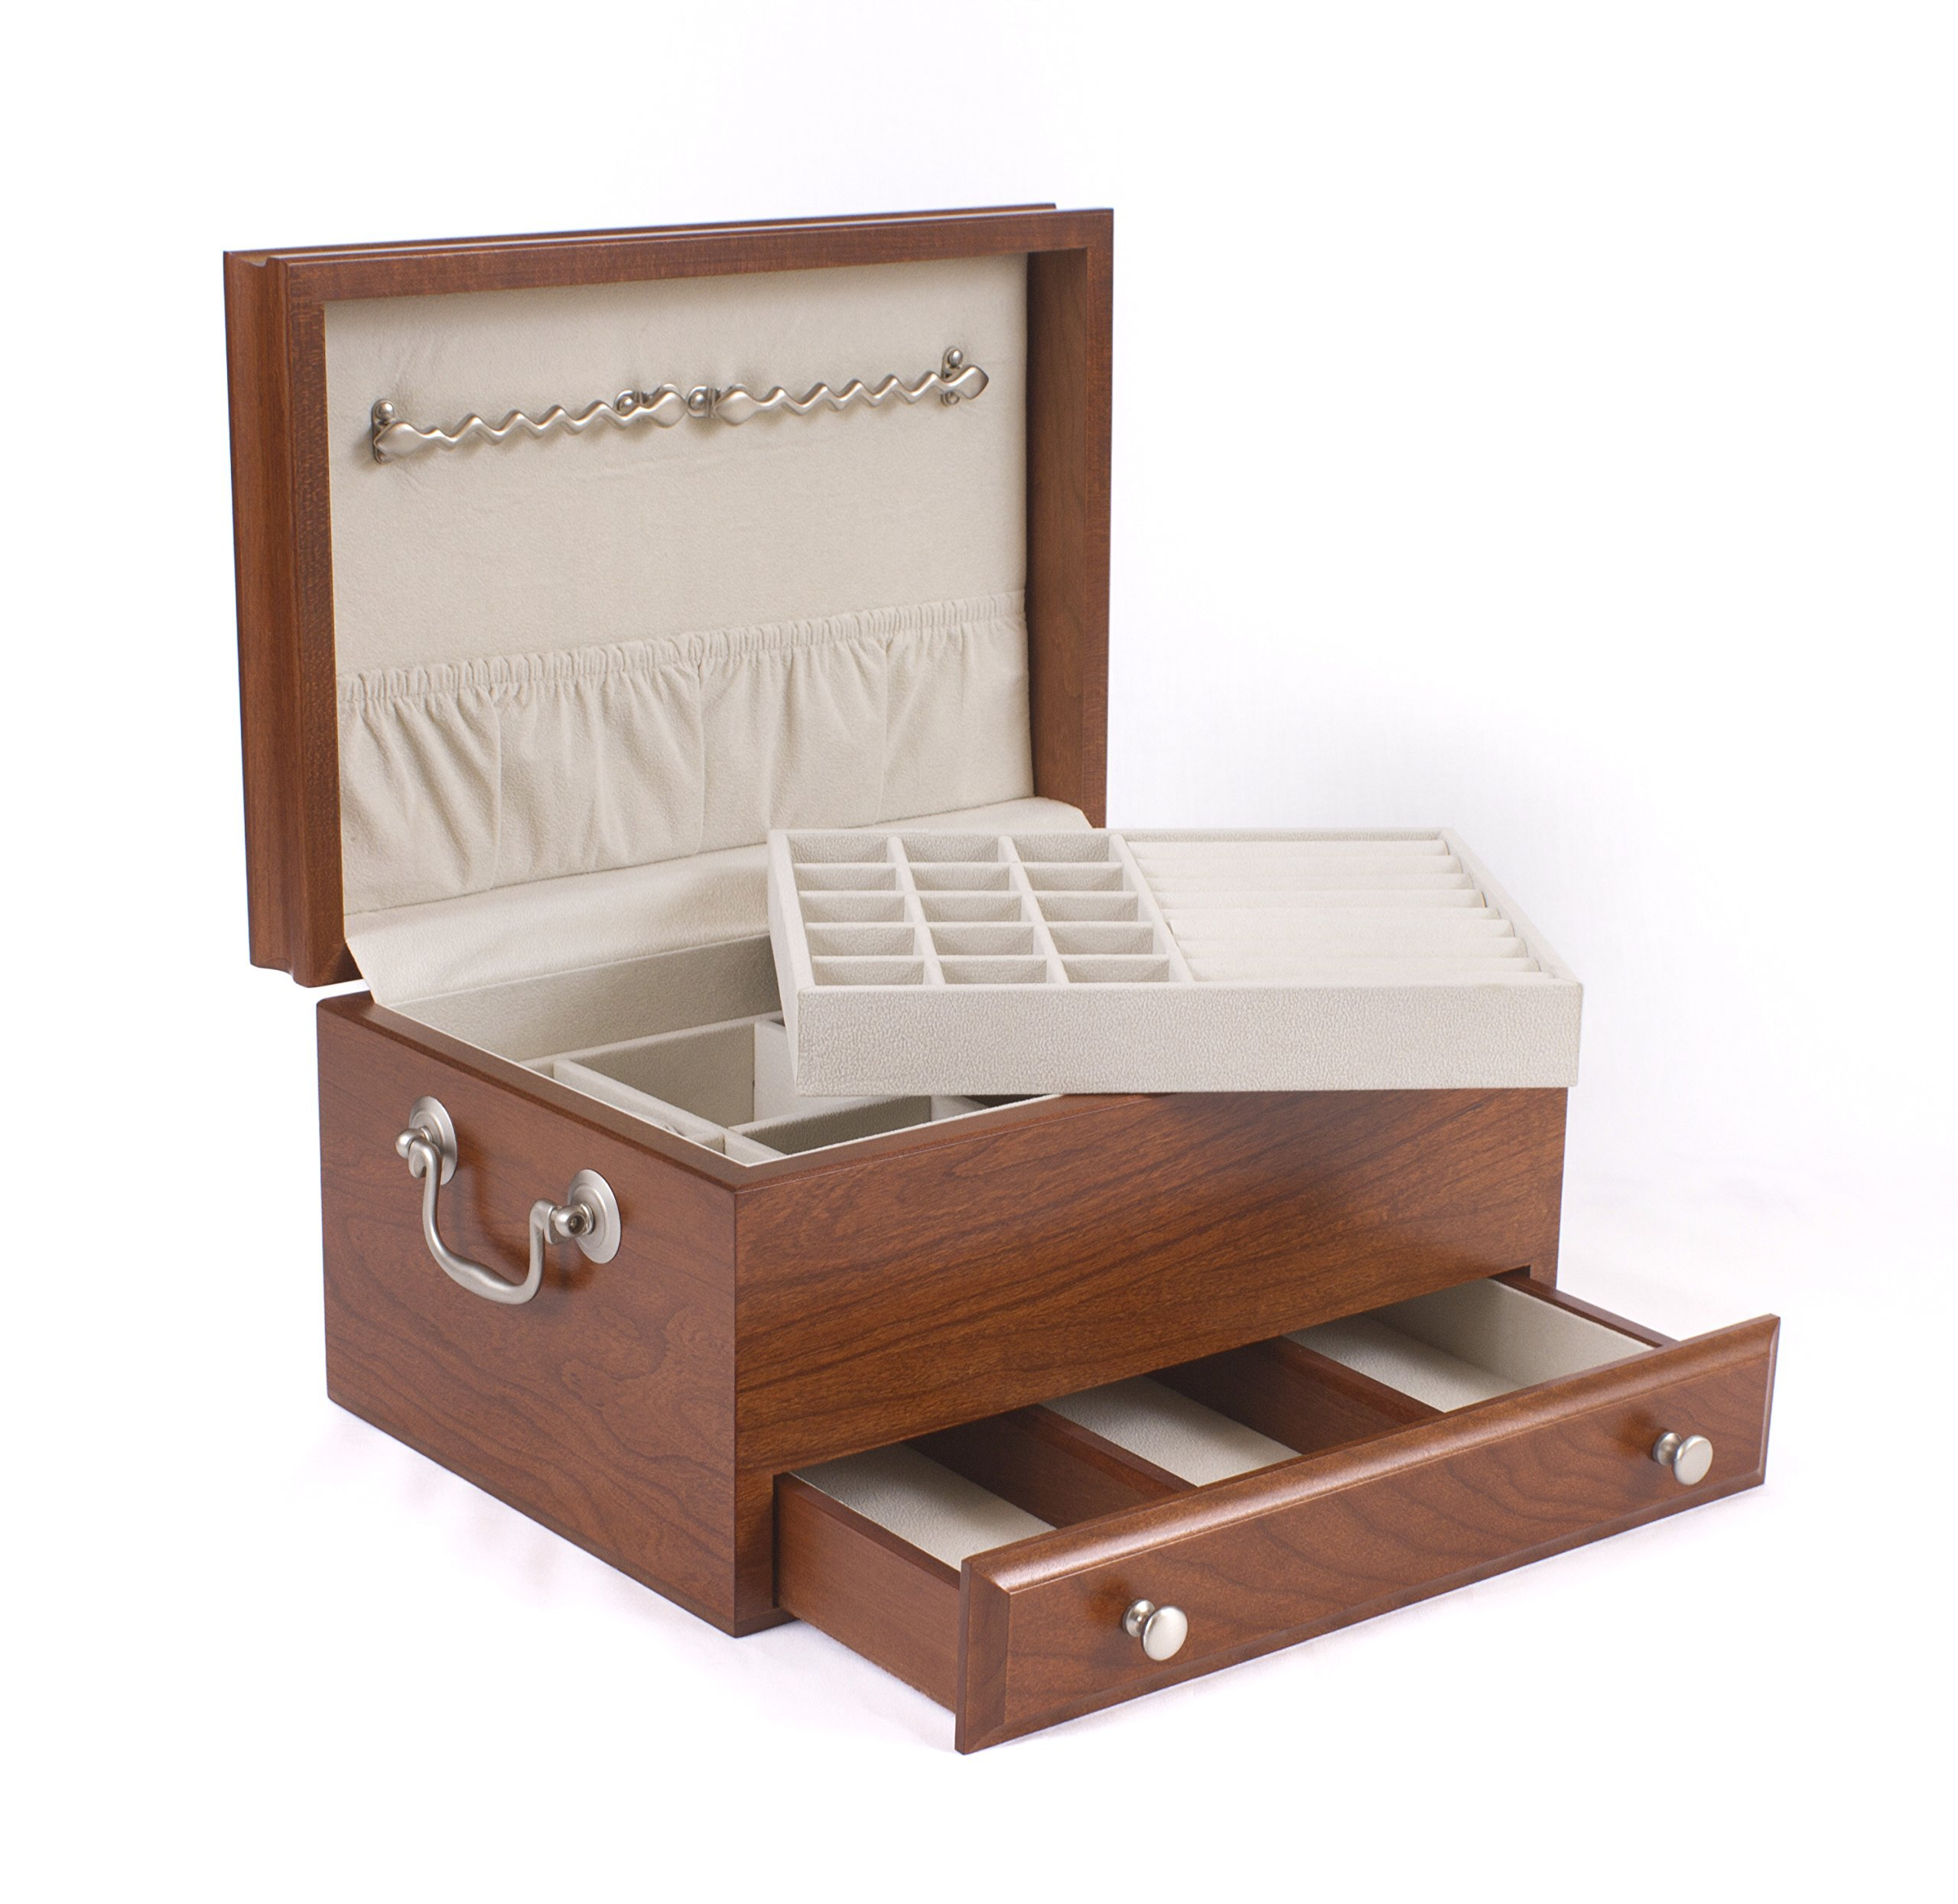 American Chest #J11C CONTESSA 1-Drawer Solid Cherry Jewel Chest with Lift-Out Tray; MADE in USA by American Chest